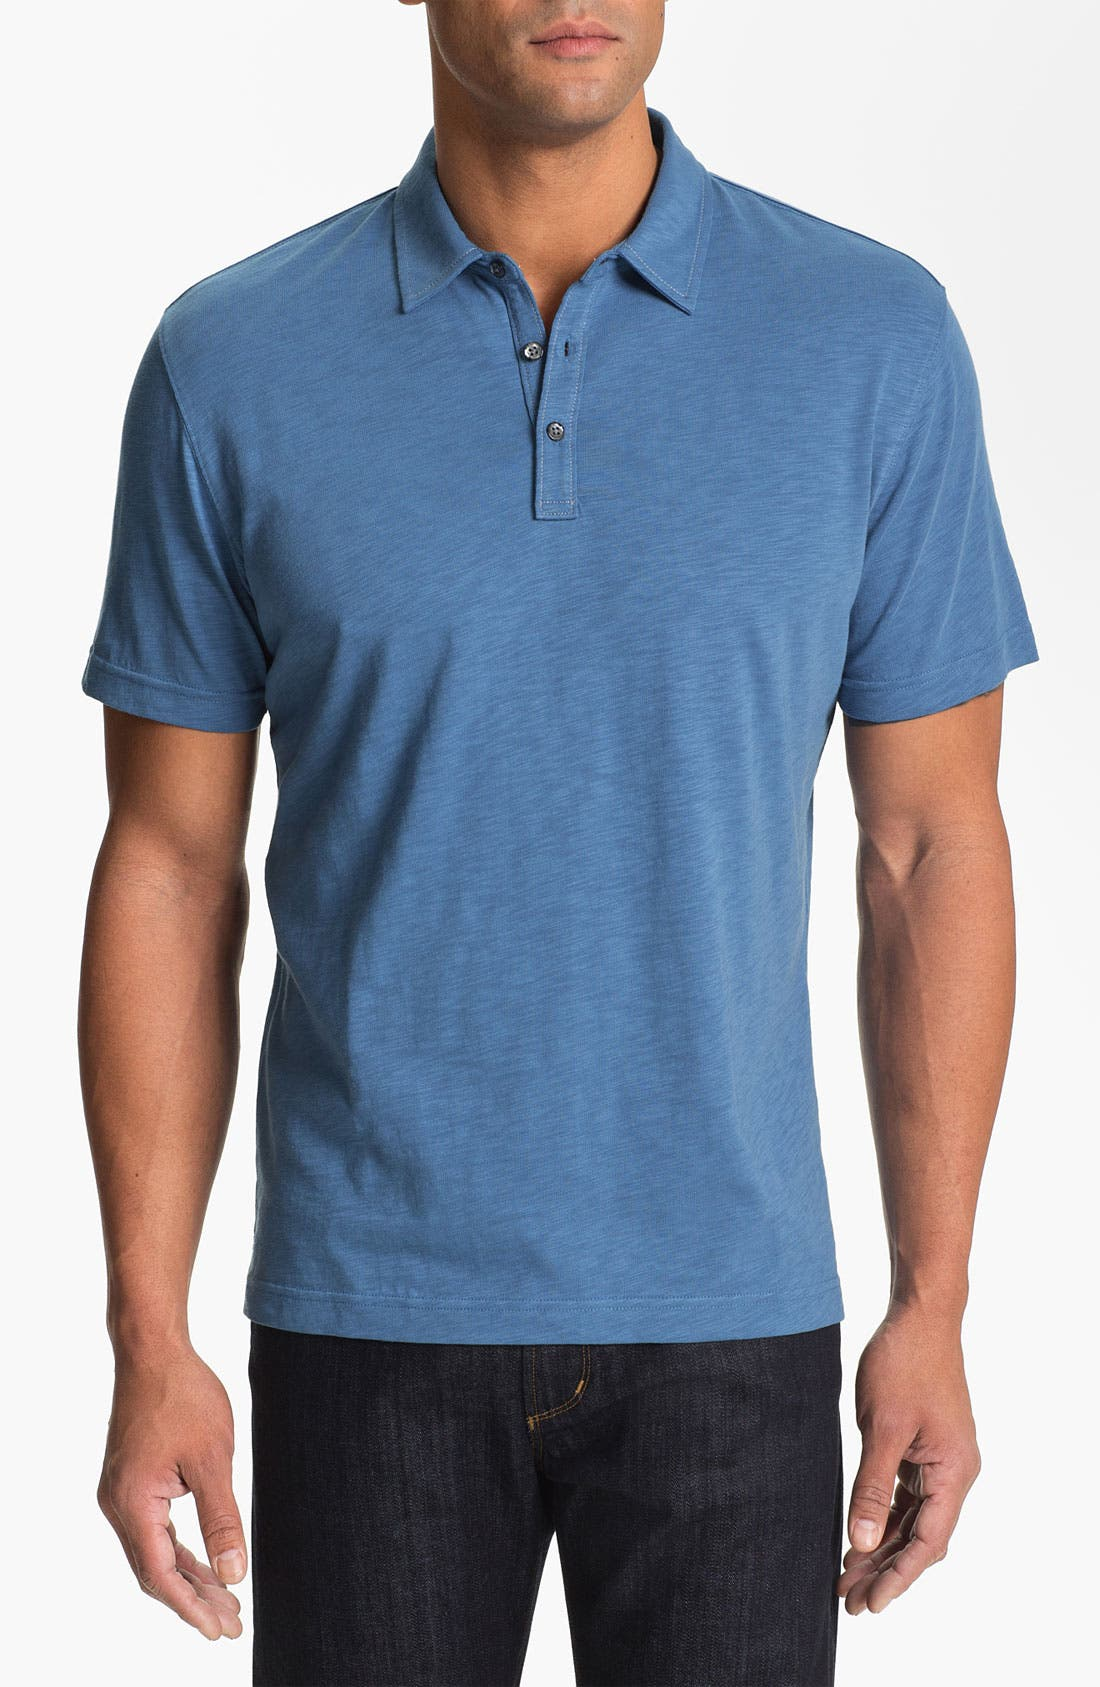 Main Image - Robert Barakett 'Miami' Regular Fit Polo